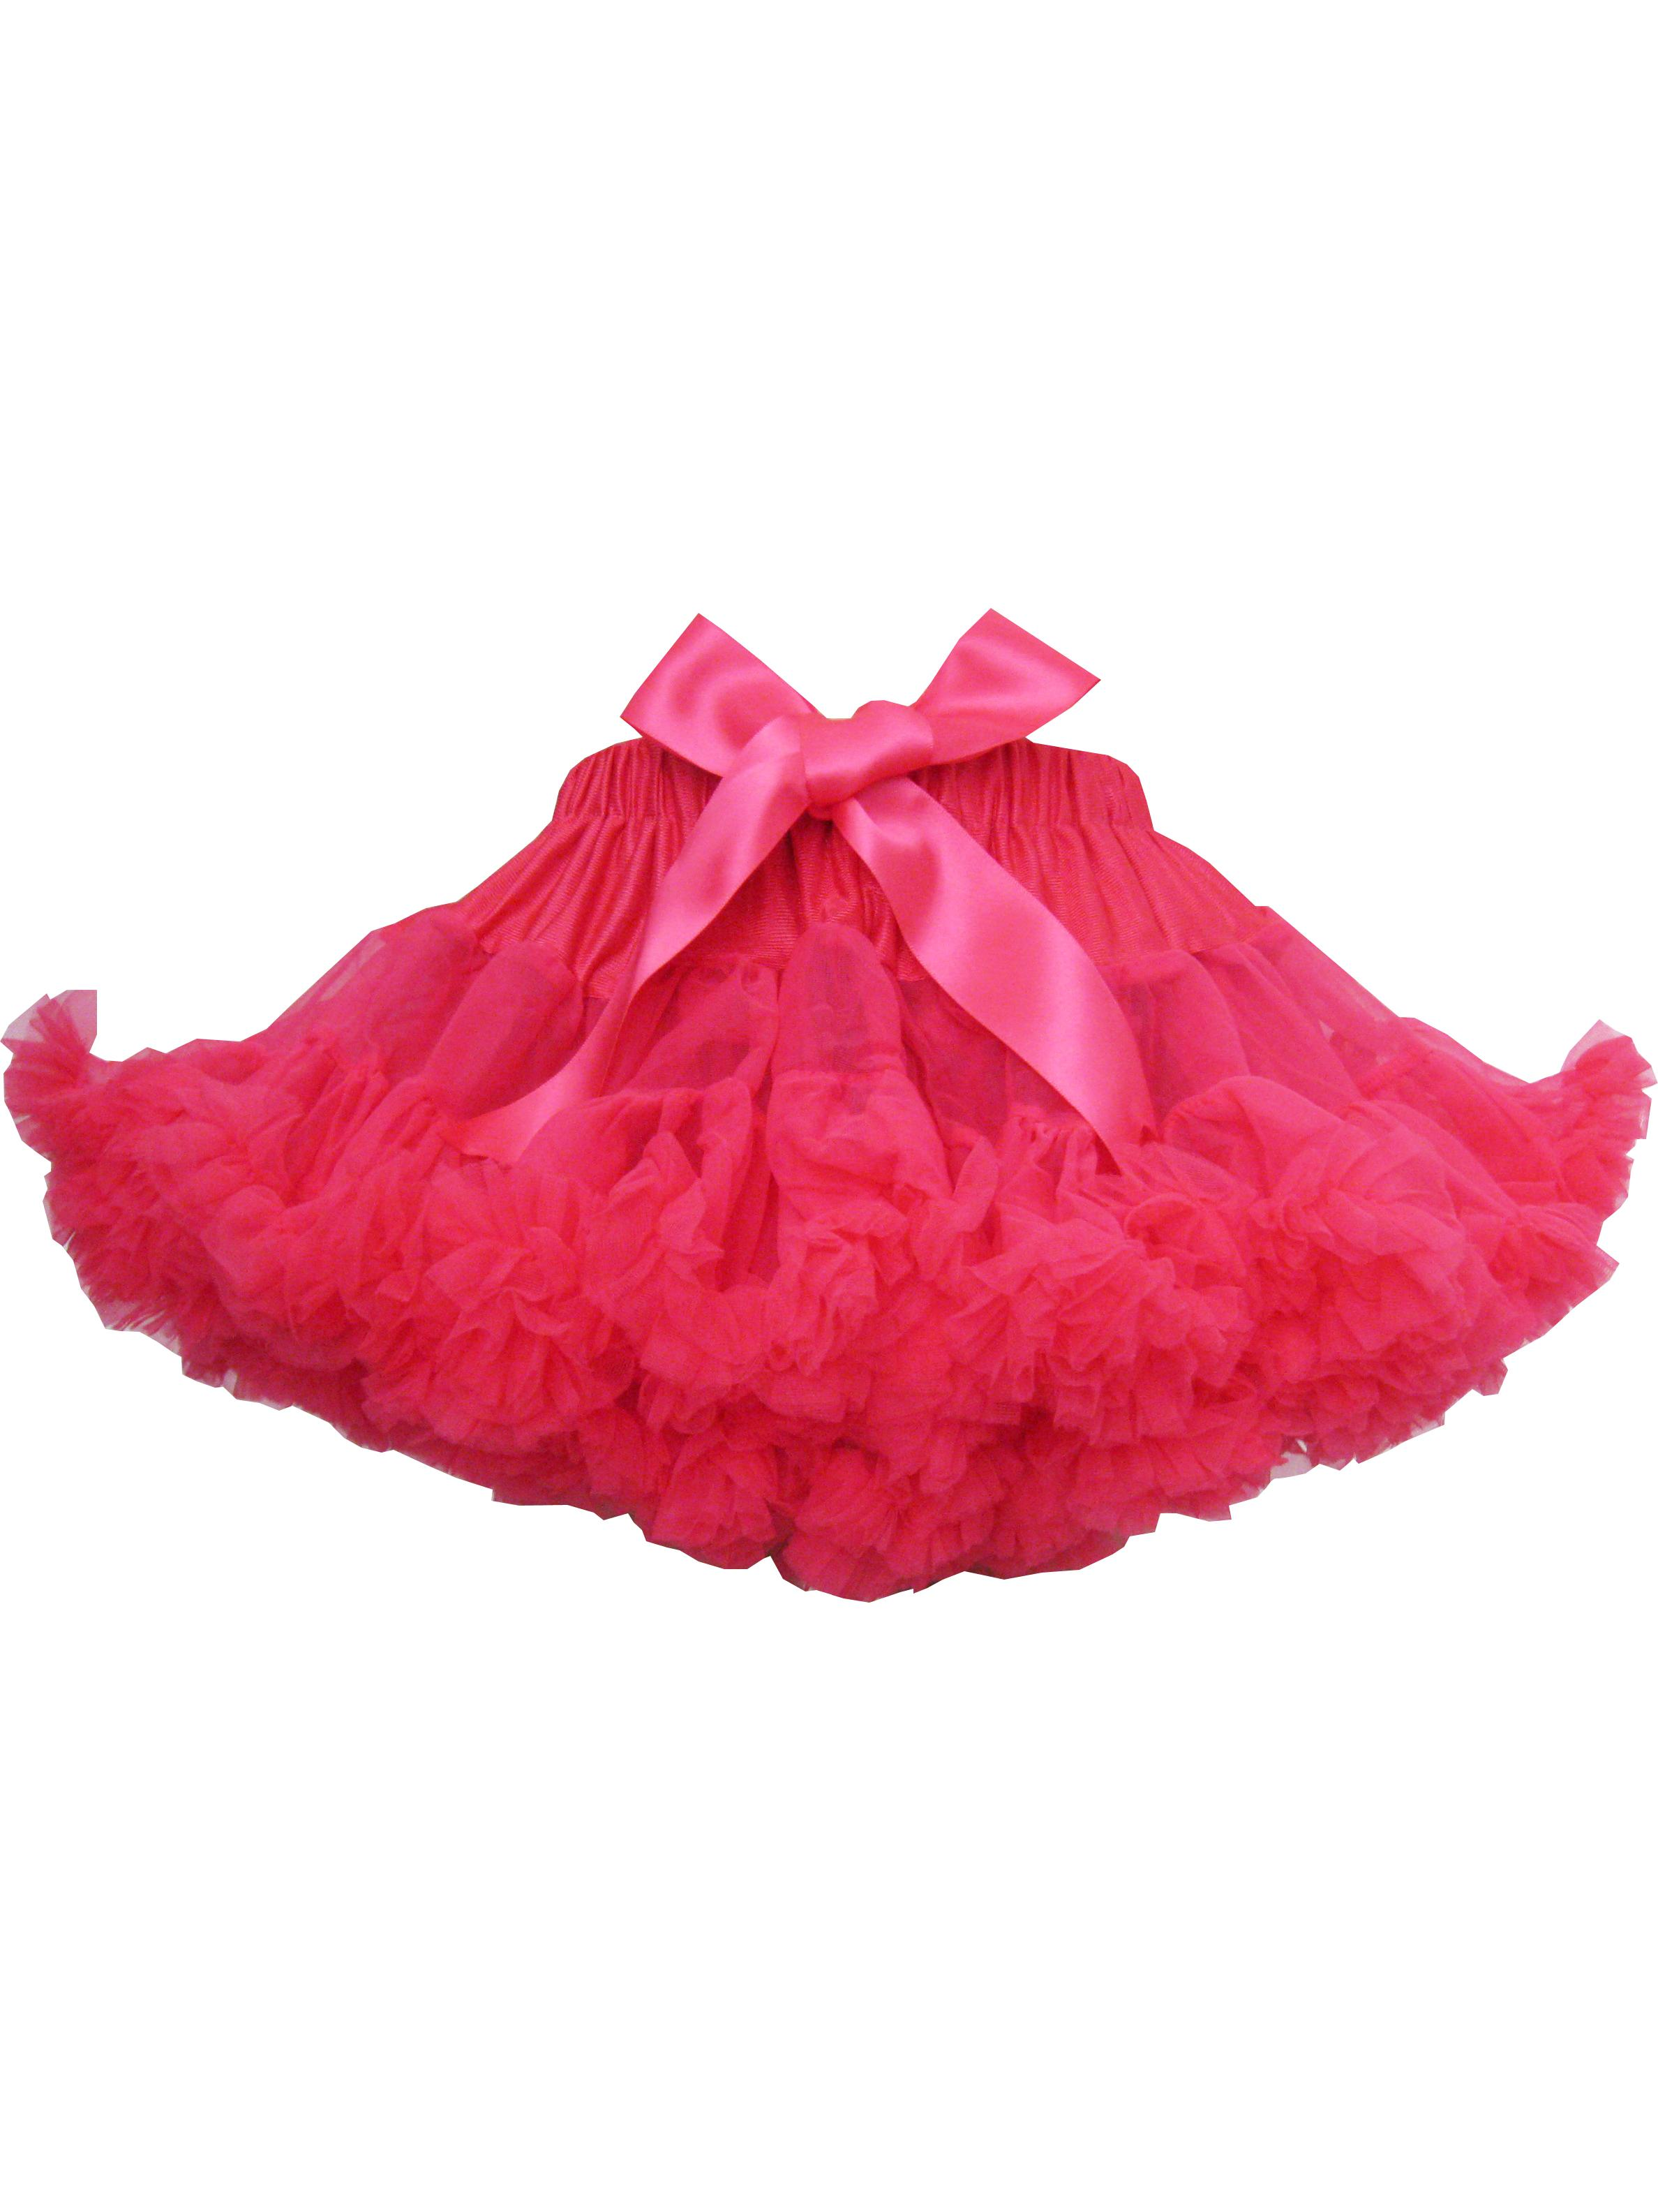 Girls Skirt Dress Multi-layers Tutu Dance Pageant Bow Kids Clothes 2-3